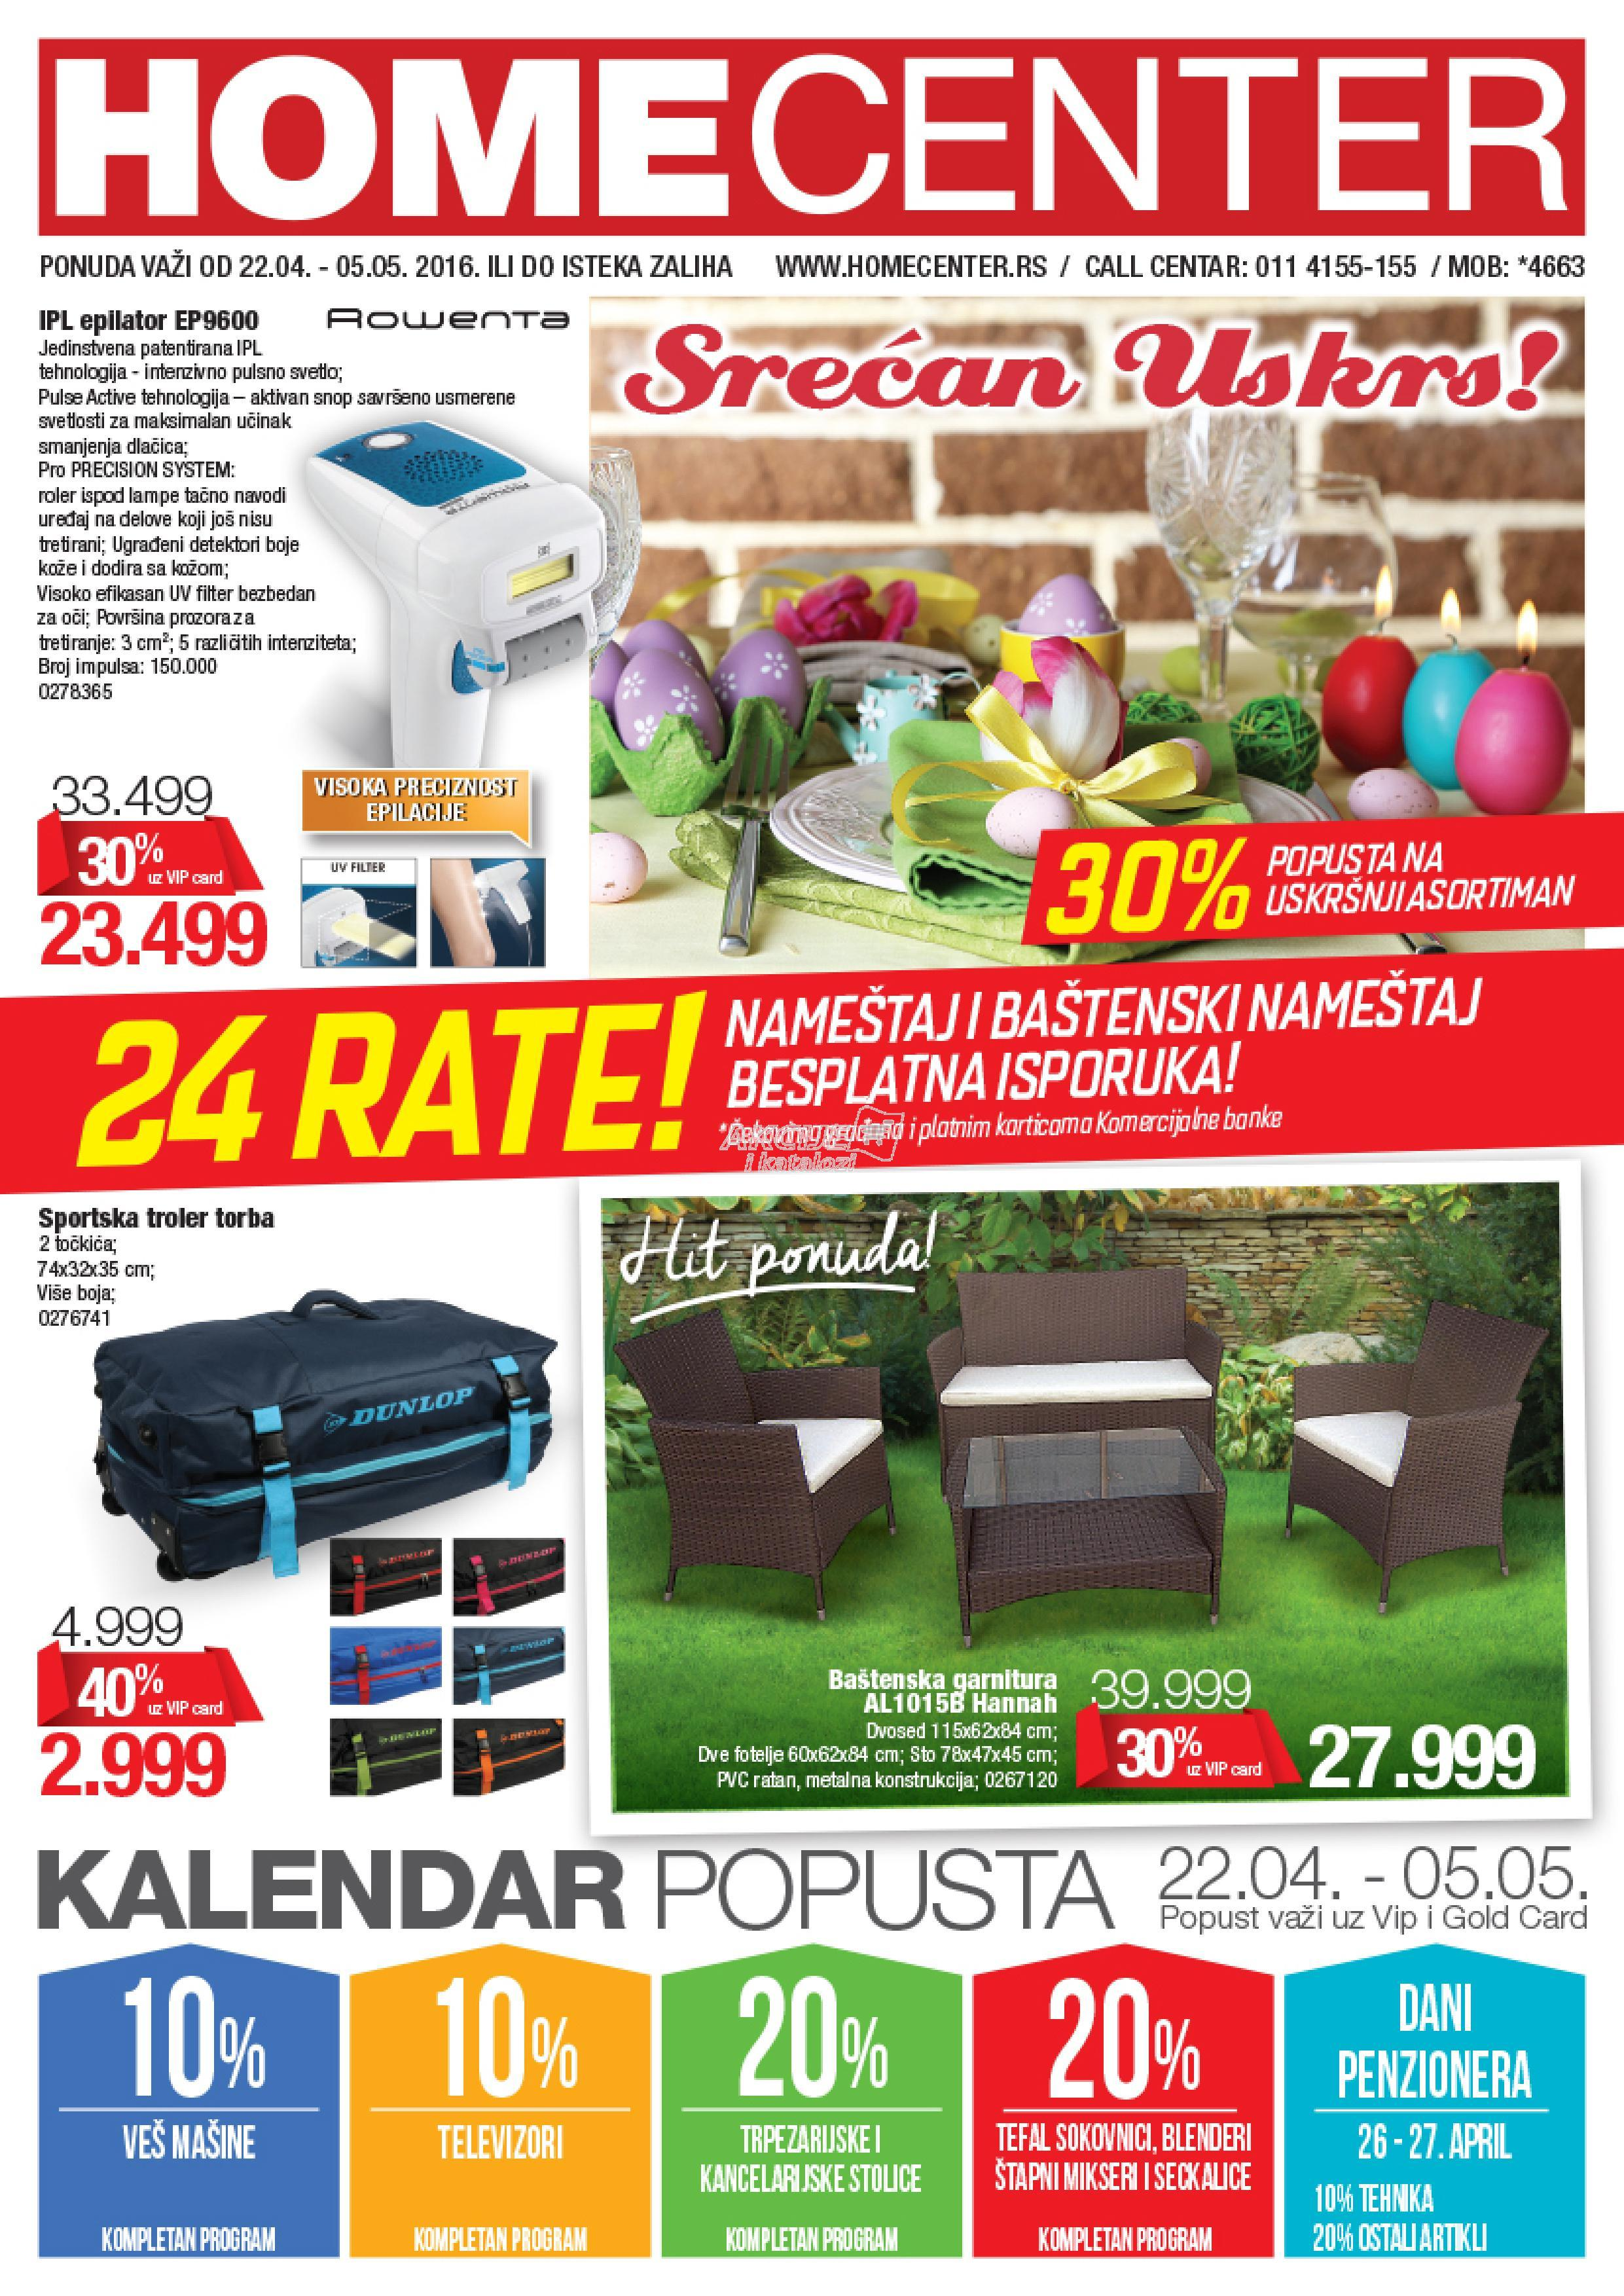 Home Center akcija super kupovine